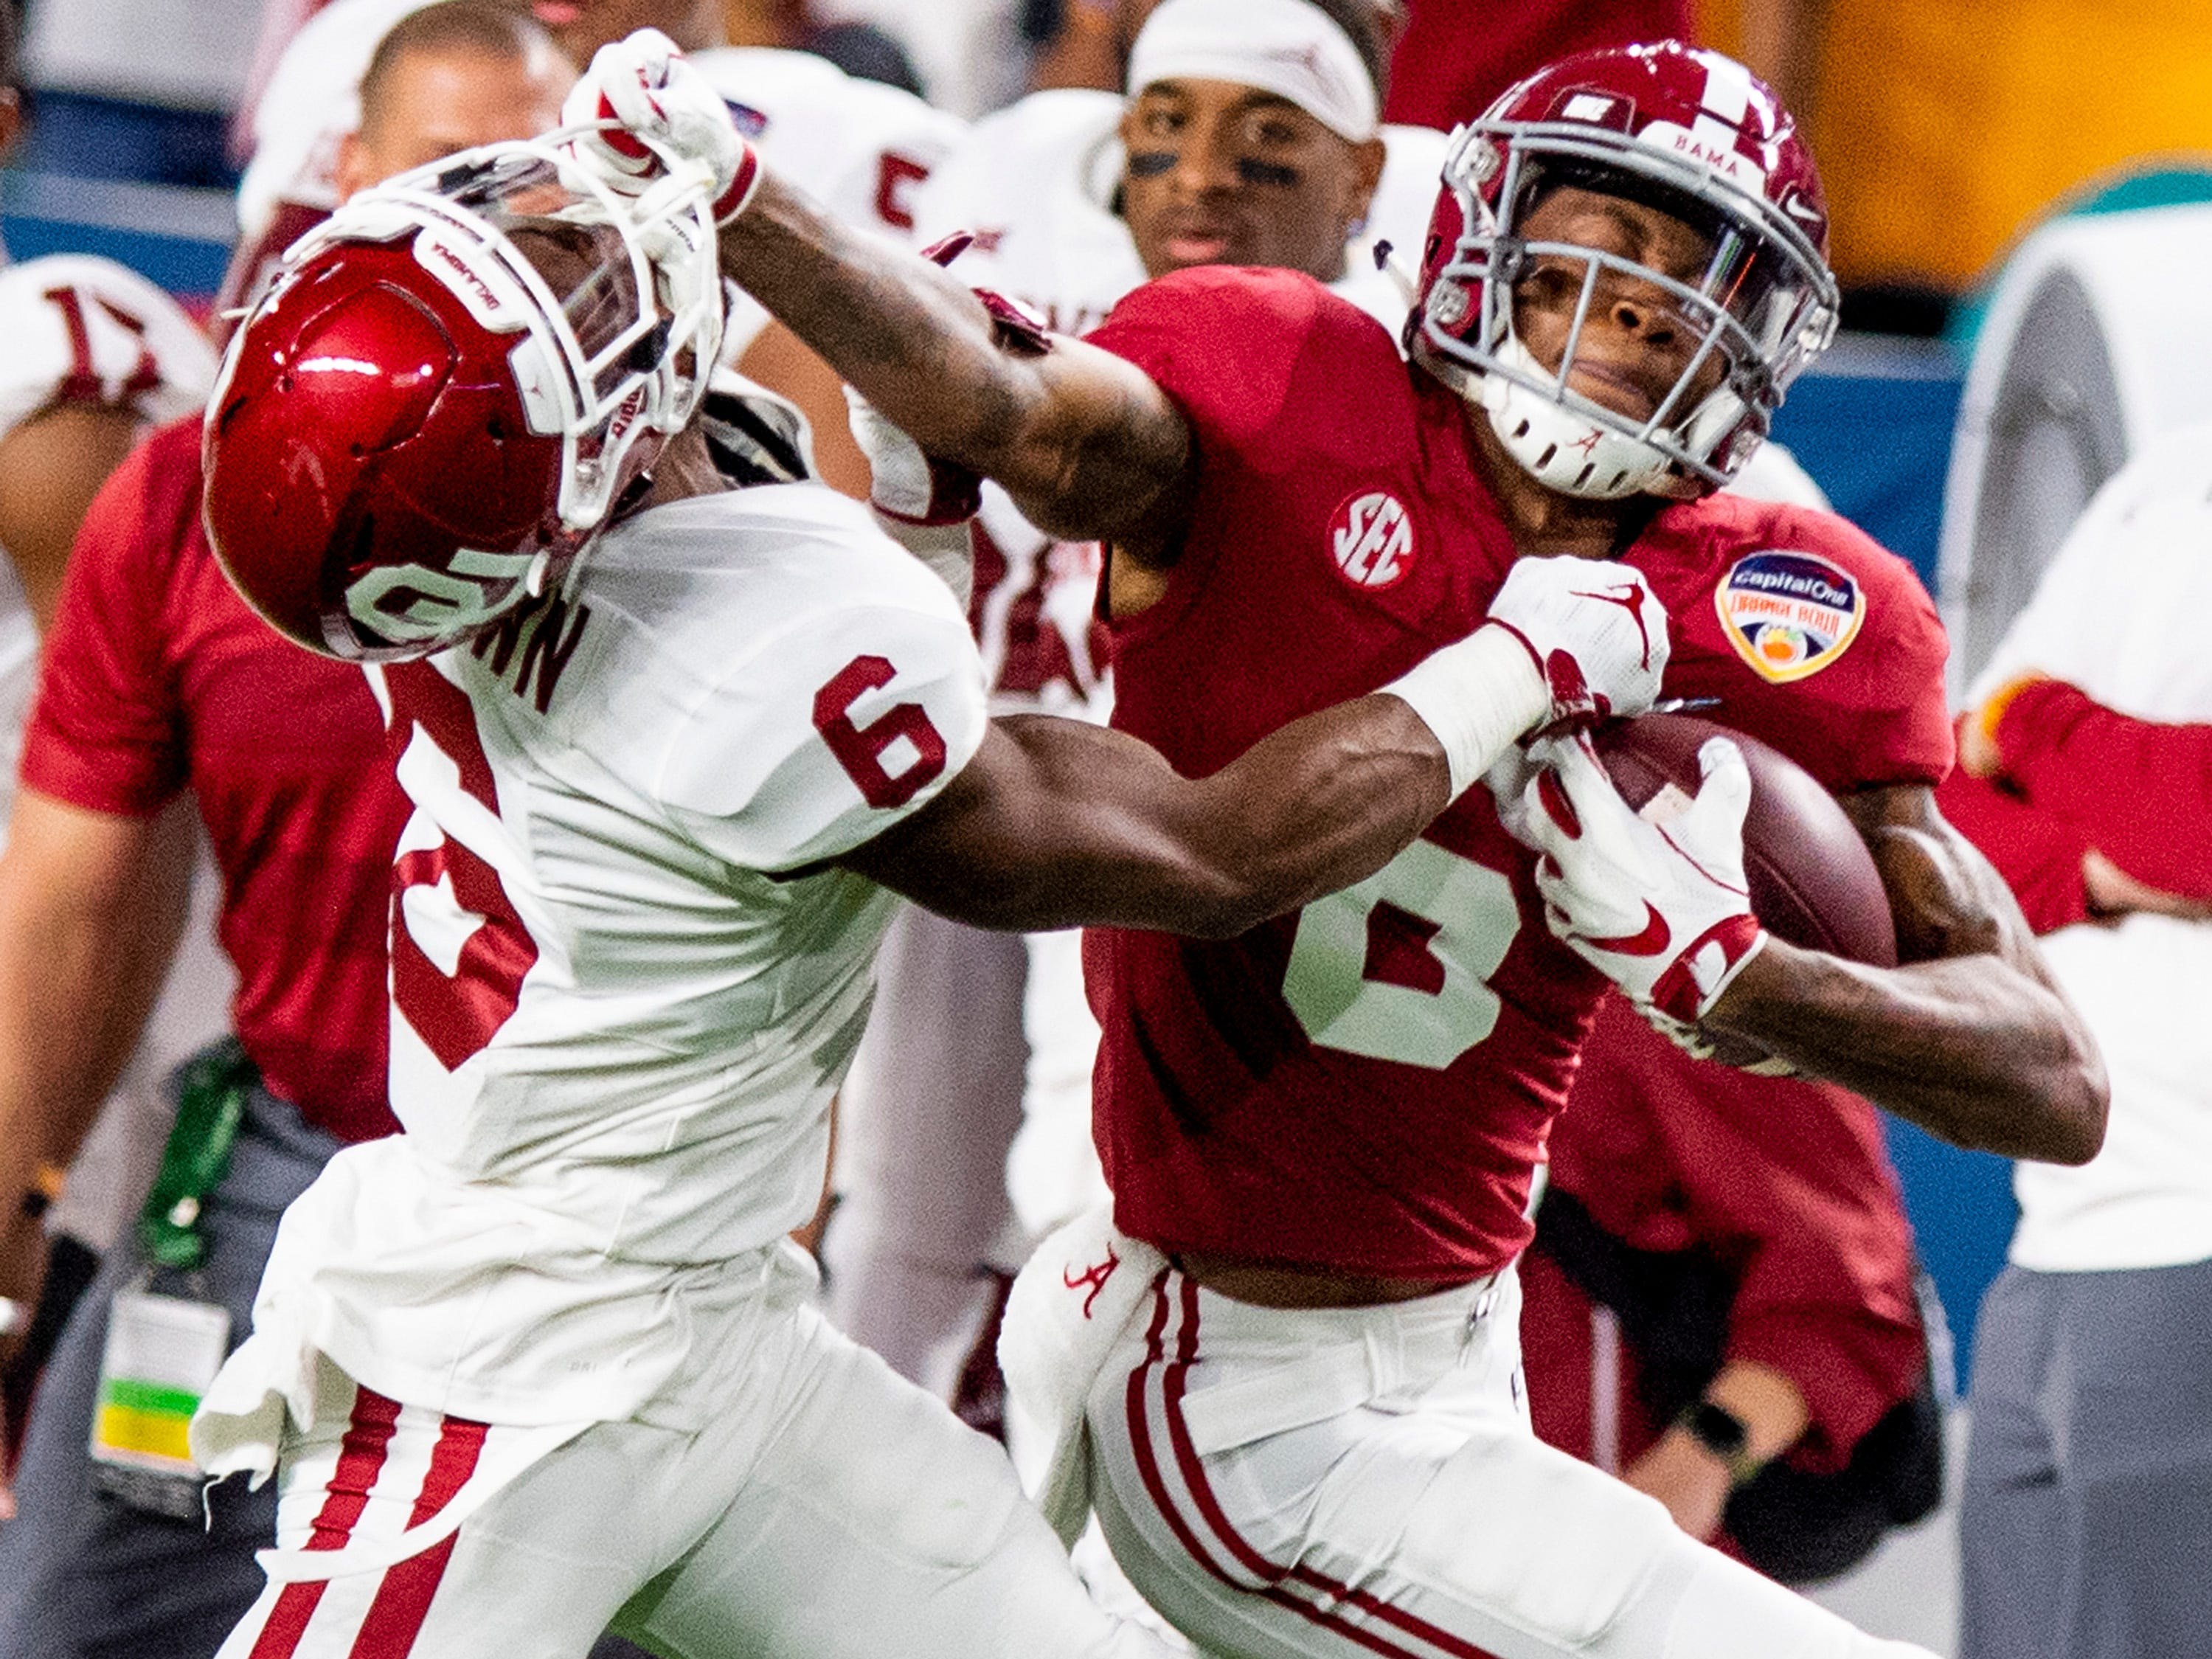 Alabama wide receiver DeVonta Smith (6) fights the tackle of Oklahoma cornerback Tre Brown (6) in first half action of the Orange Bowl at Hard Rock Stadium in Miami Gardens, Fla., on Saturday December 29, 2018.